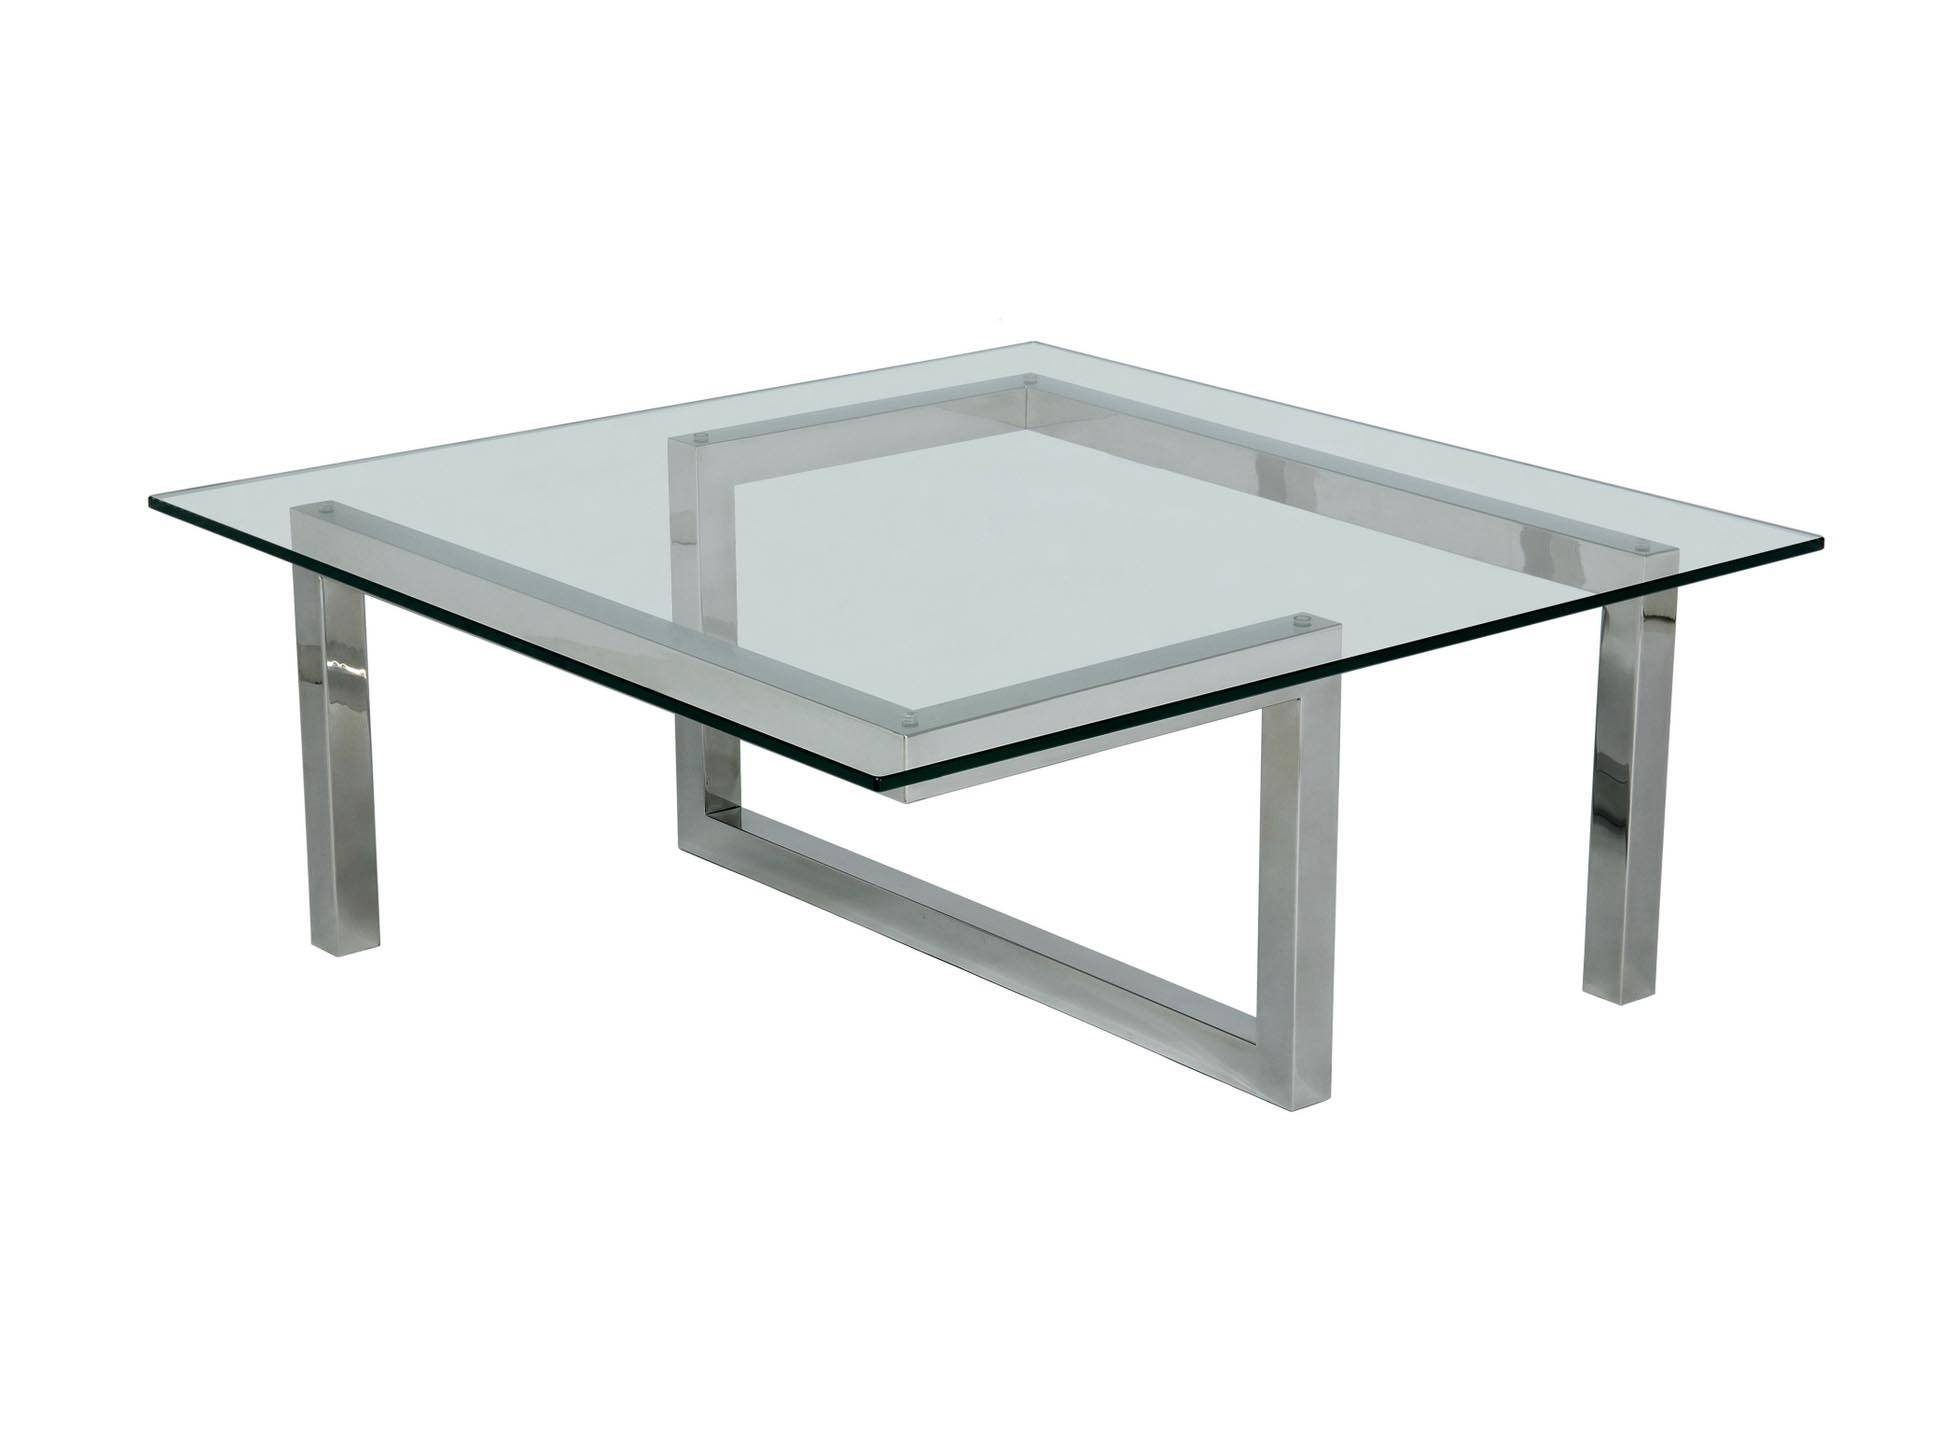 Stainless Steel And Glass Coffee Tables | Coffee Table Design Ideas inside Steel And Glass Coffee Tables (Image 25 of 30)